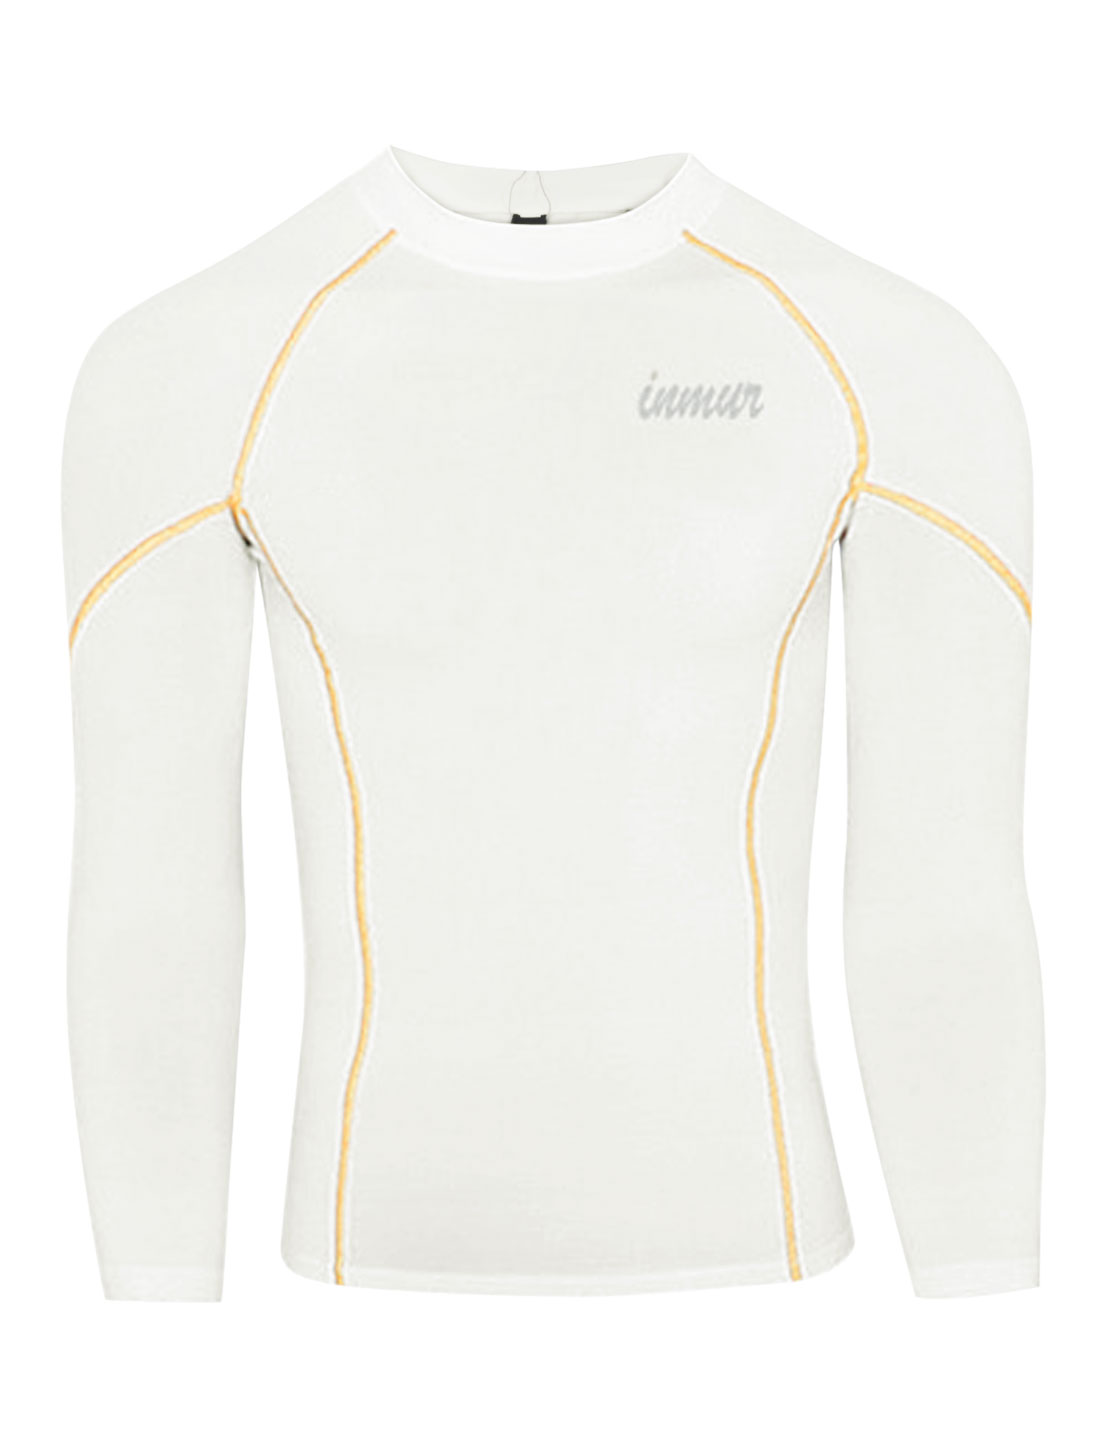 Men Pullover Long Sleeve Letters Detail Fitness Sports T-shirt White M